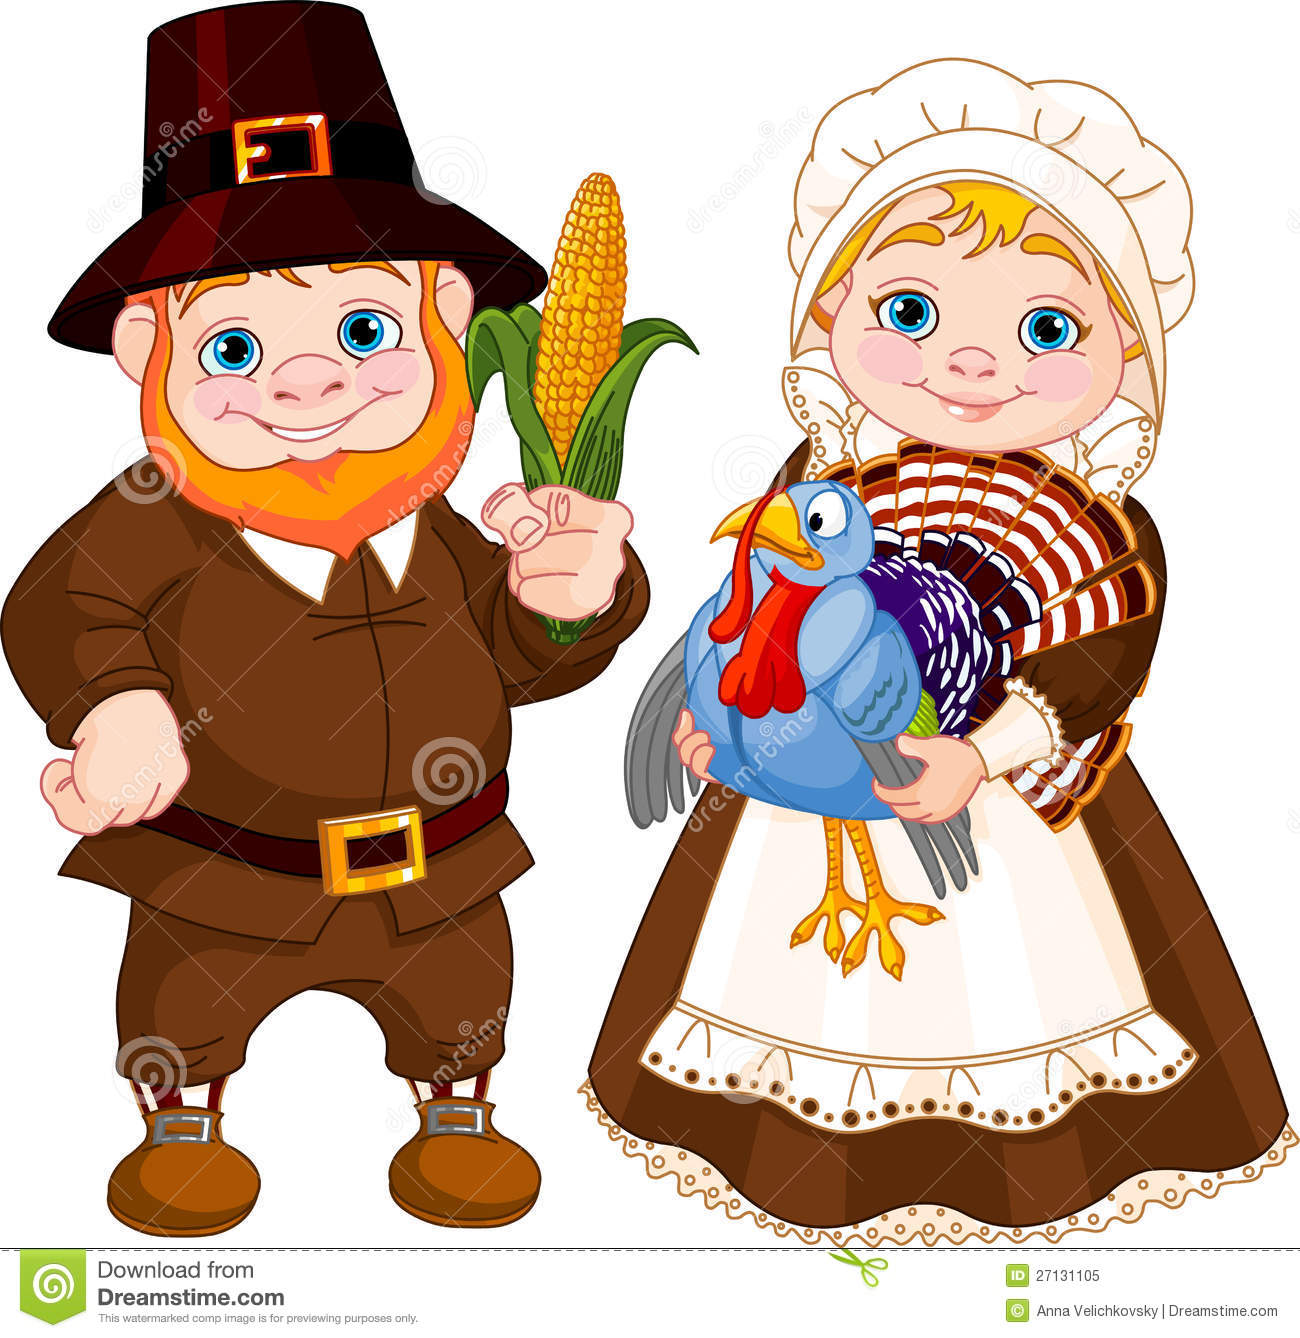 Cute Pilgrims Couple Royalty Free Stock Photo - Image: 27131105